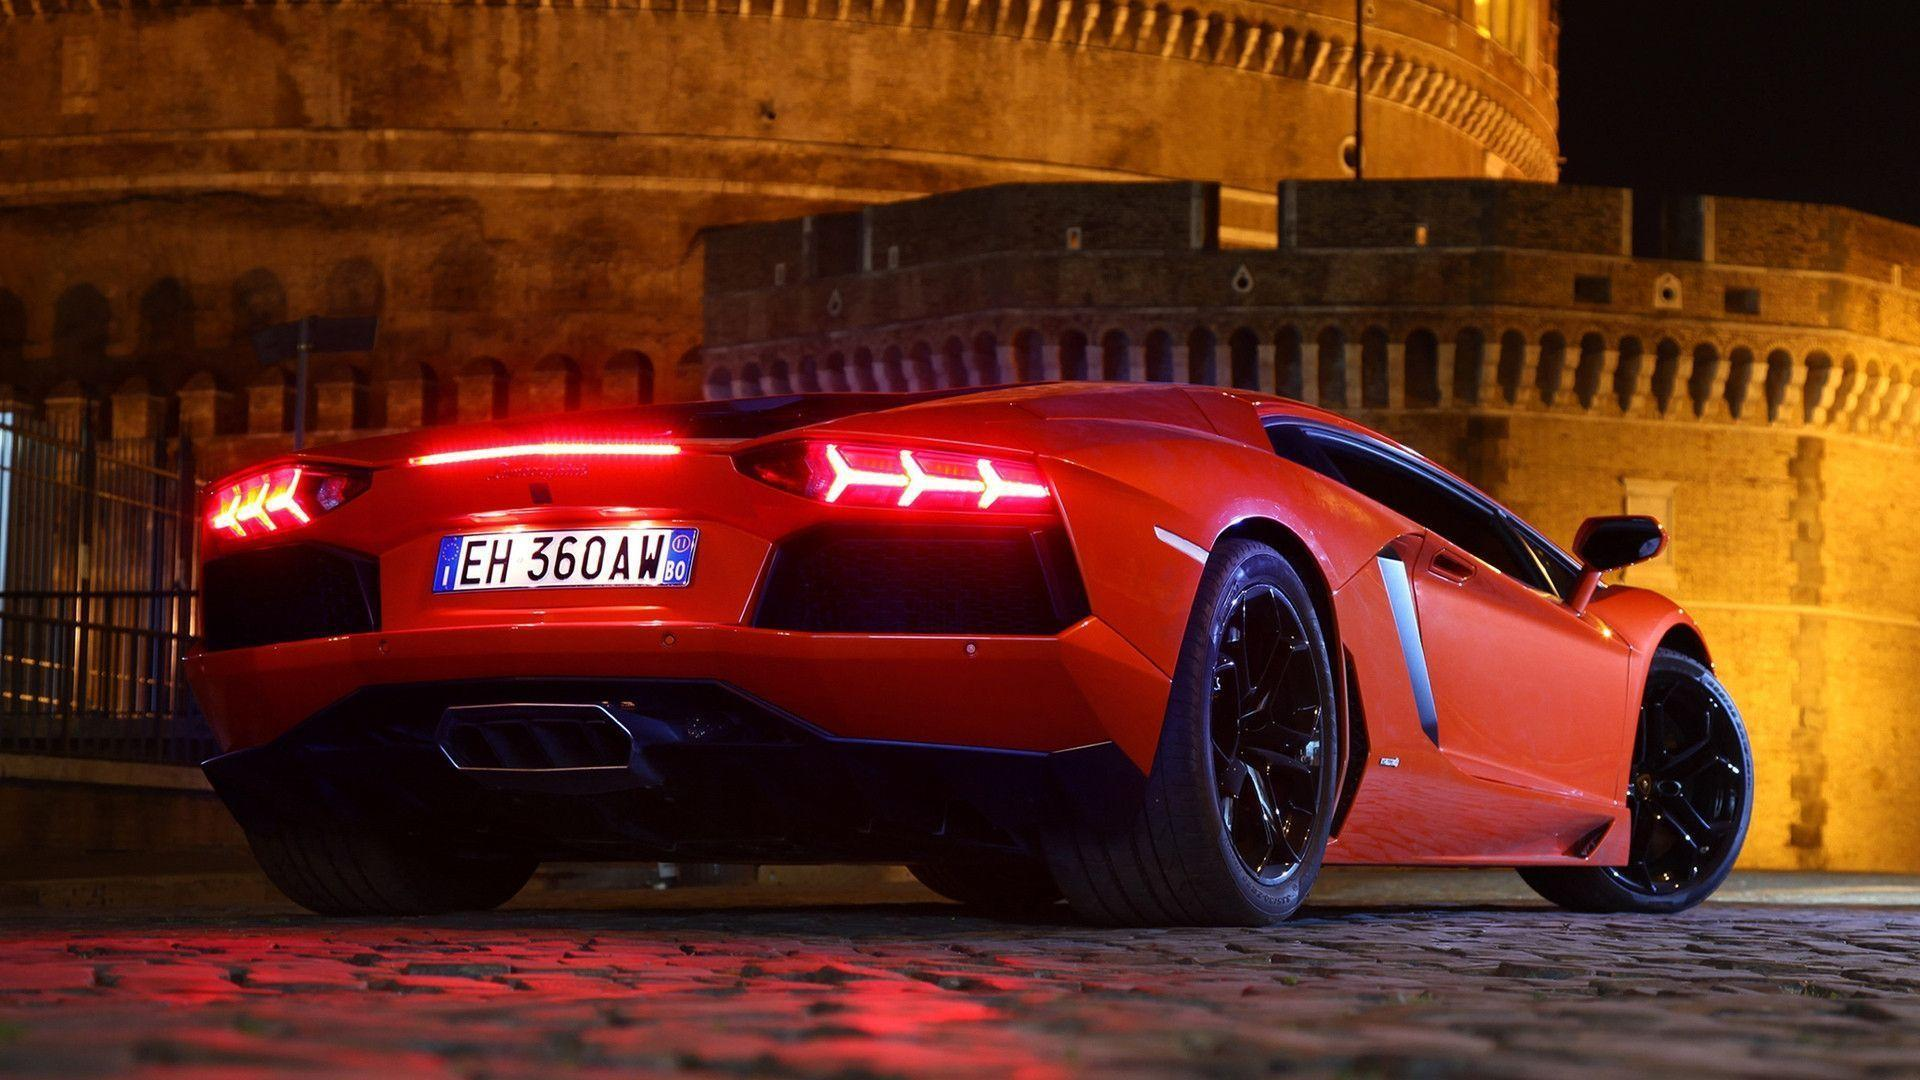 Wallpapers For > Lamborghini Hd Wallpapers For Desktop